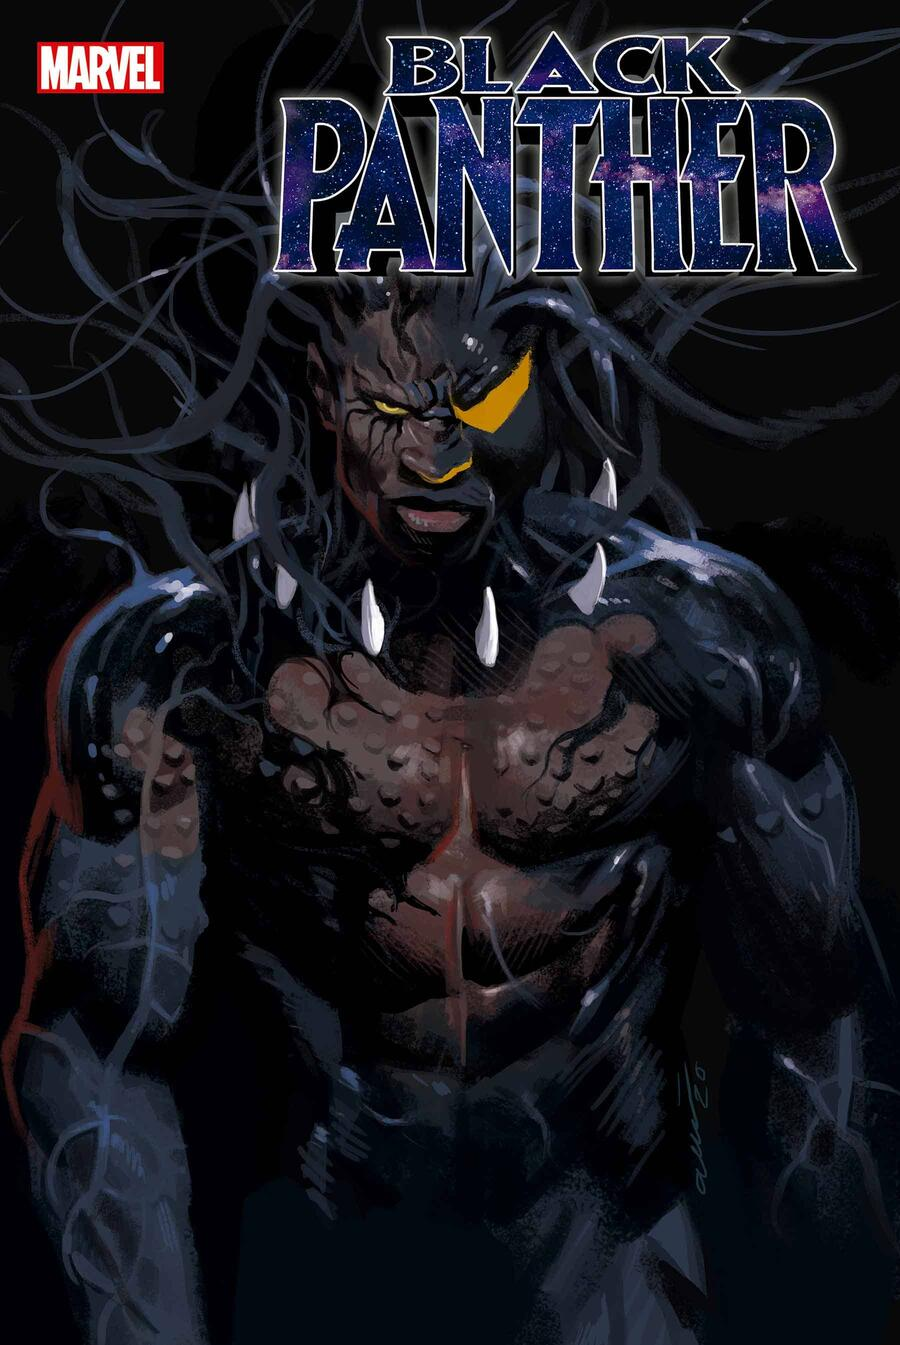 BLACK PANTHER #23 cover by Daniel Acuña